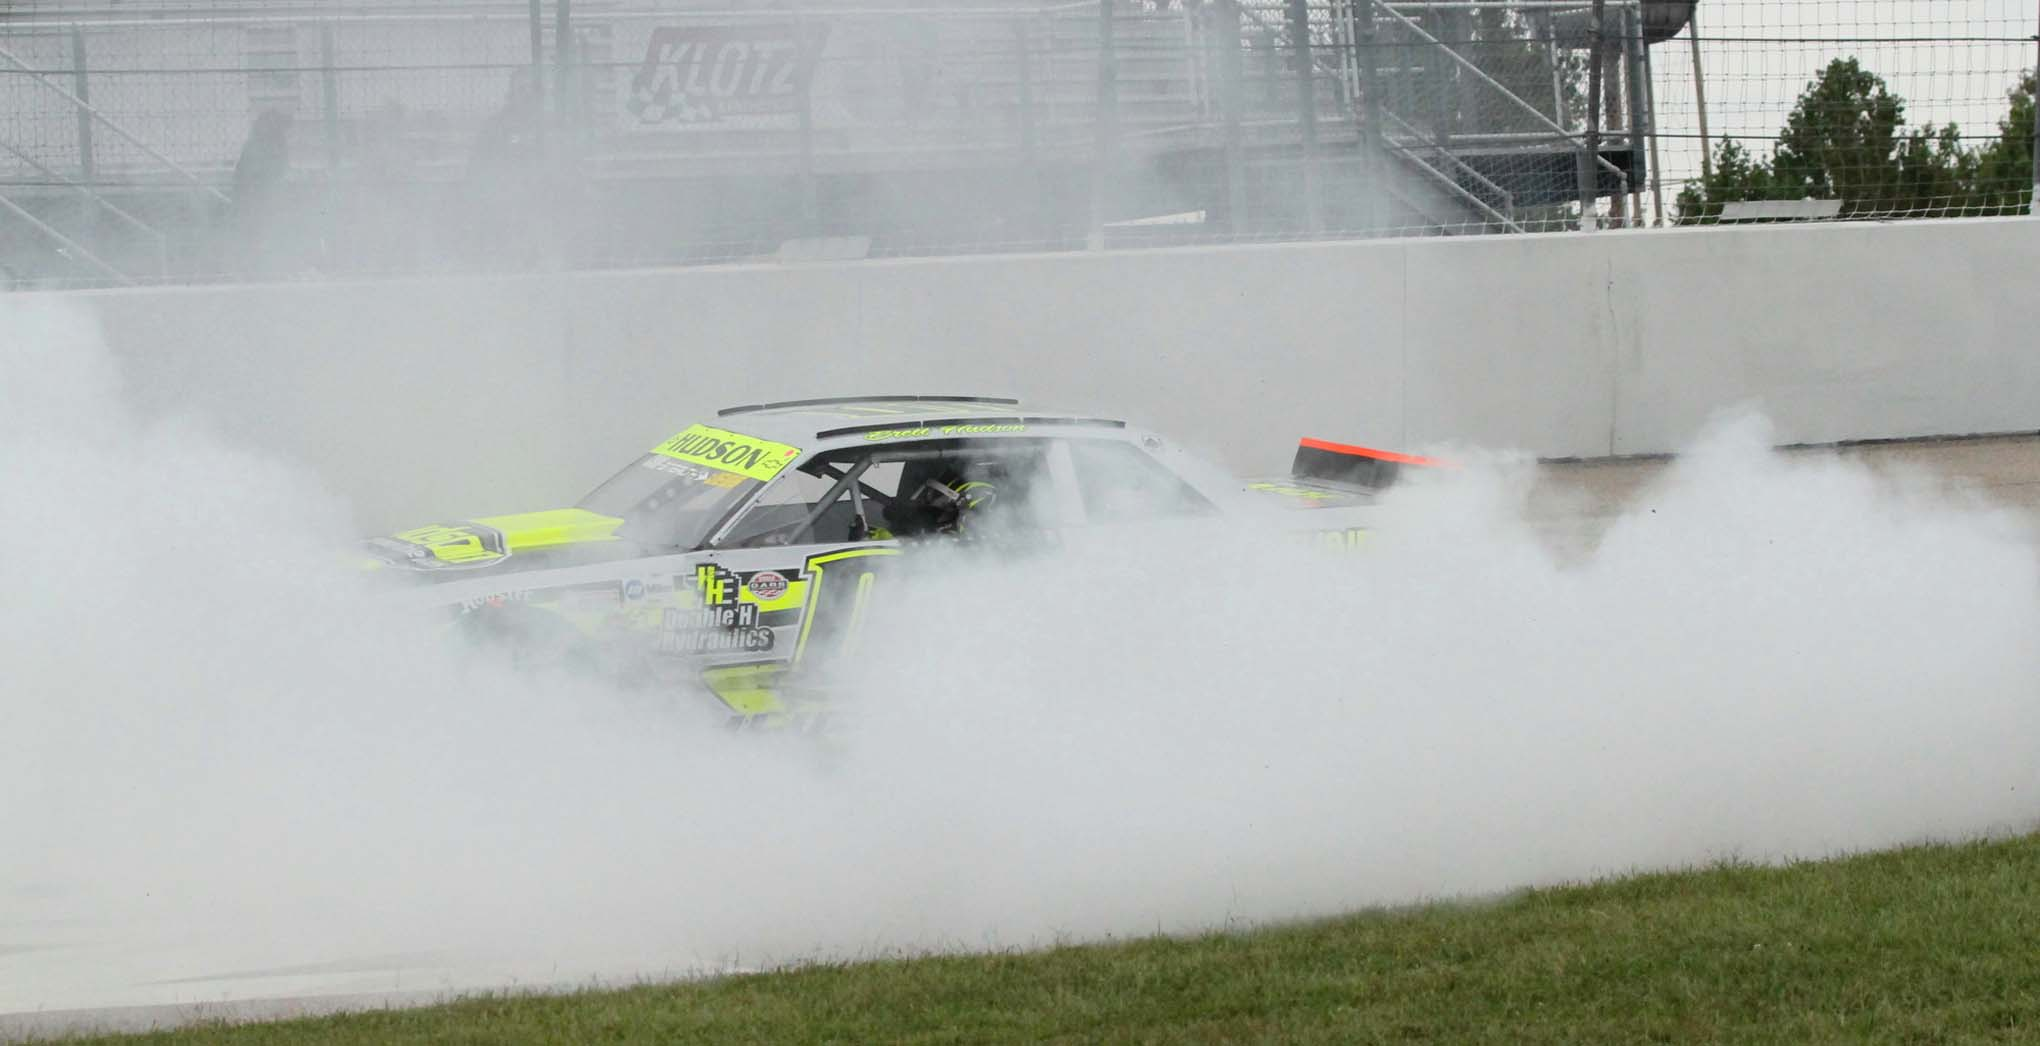 Brett Hudson is getting pretty good at these burnouts. Check out this disappearing act.